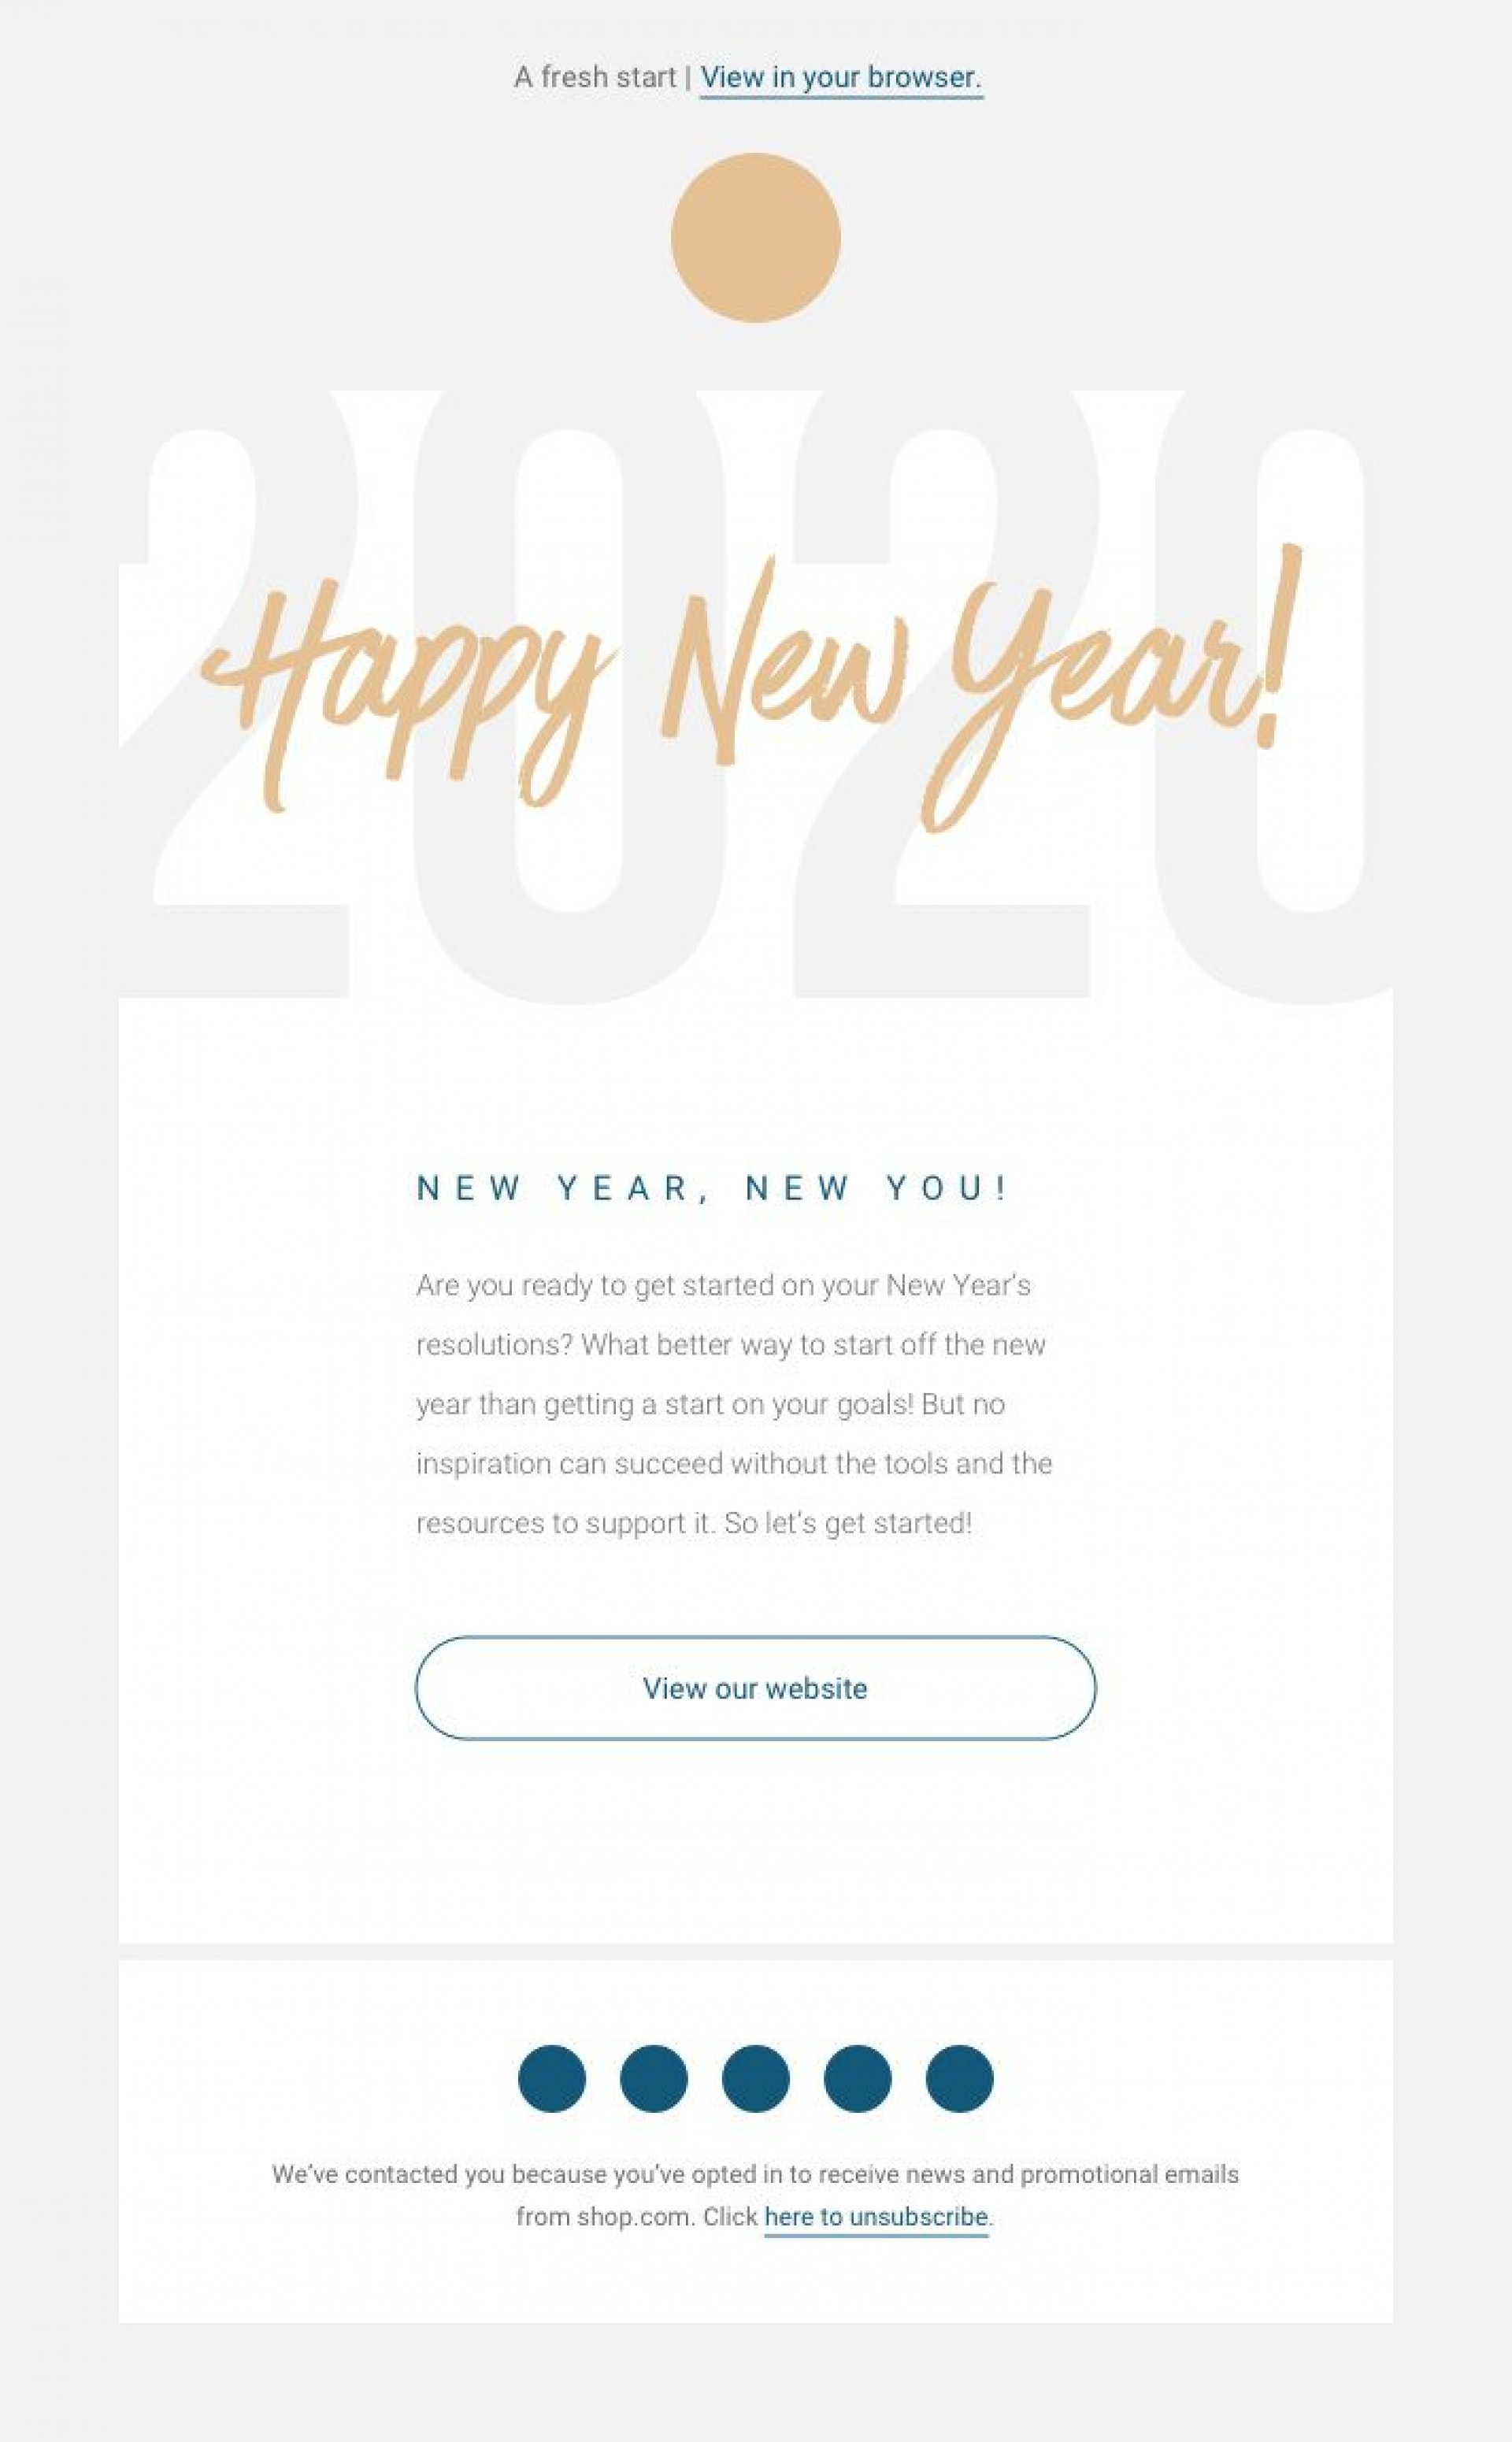 009 Unforgettable Holiday E Mail Template Sample  Templates Mailchimp Email1920